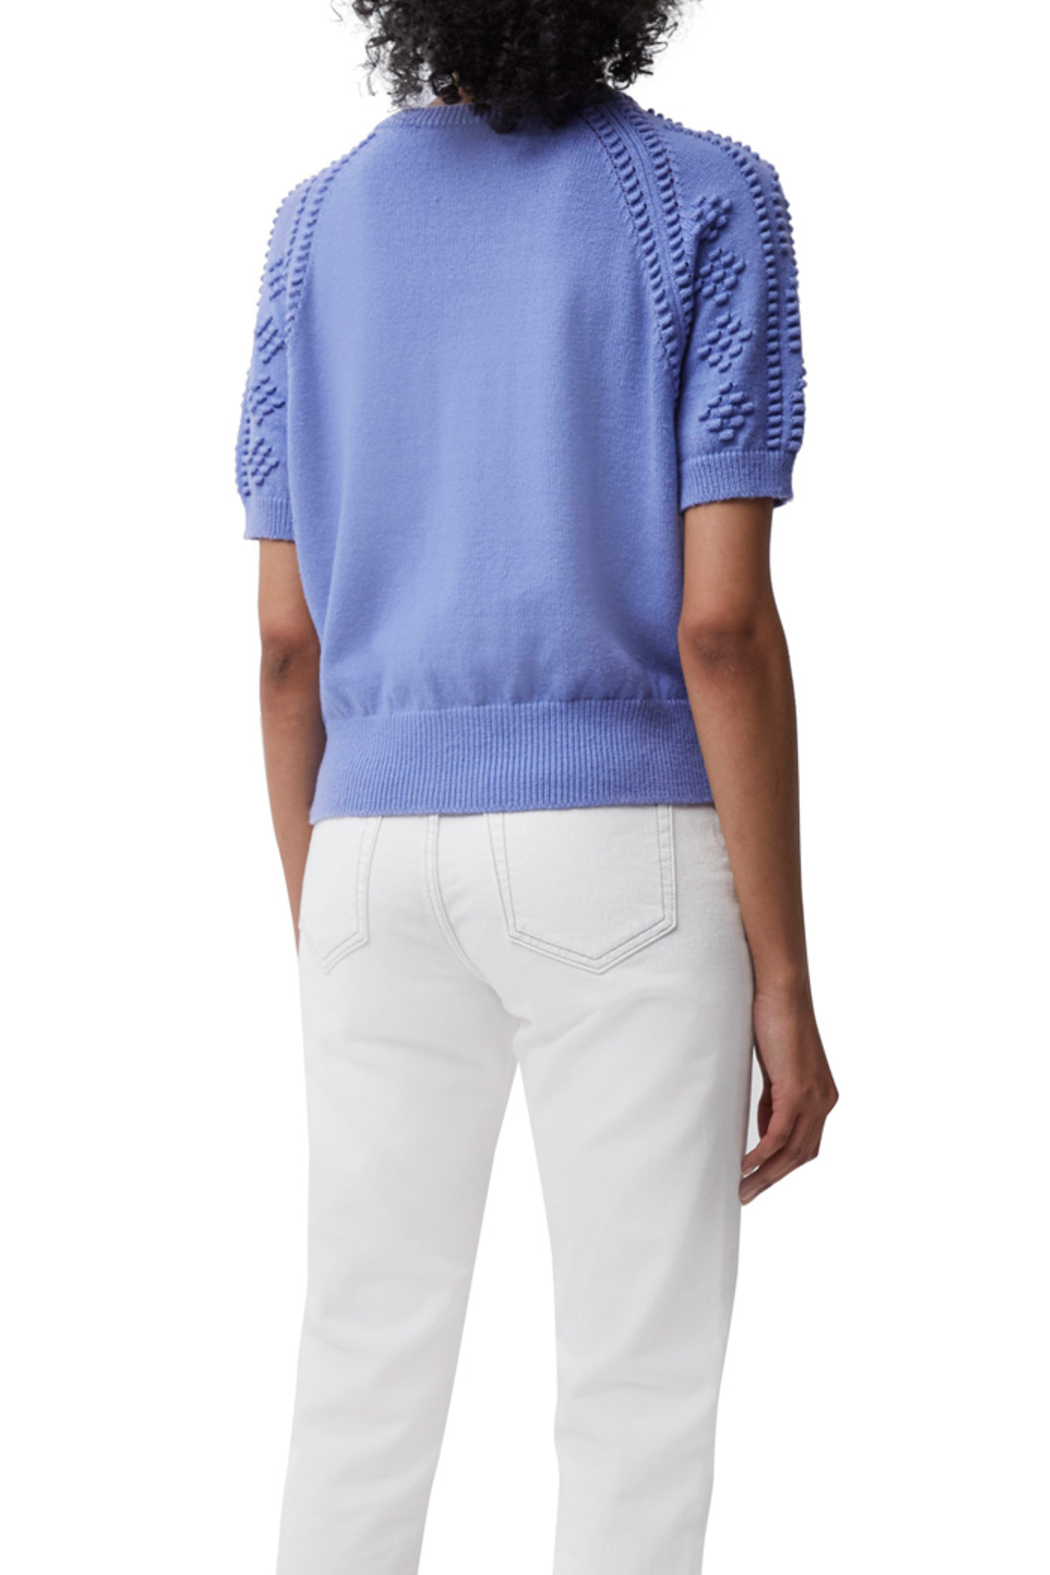 French Connection Karla Knitted Short Sleeve Jumper - Front Full Image